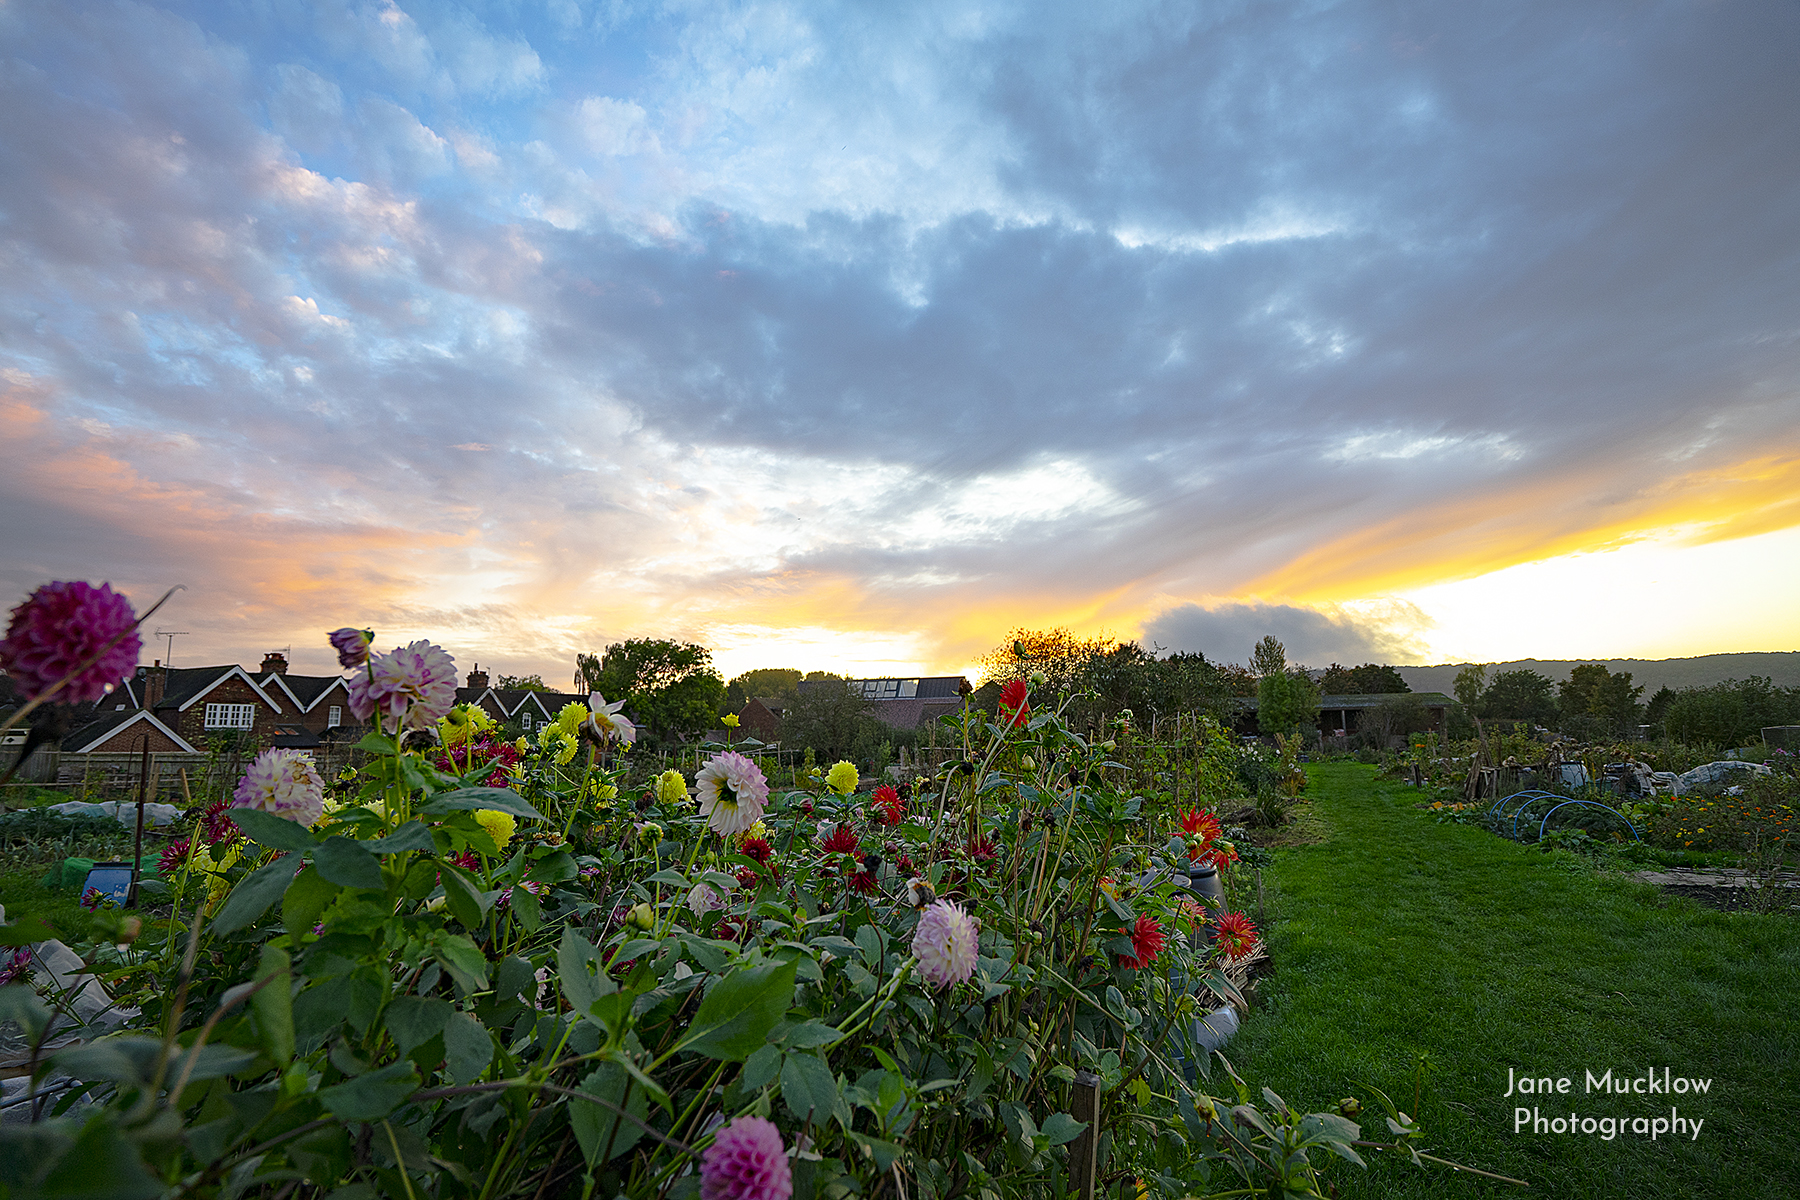 Photograph of the dahlias at Otford Allotments, at sunrise